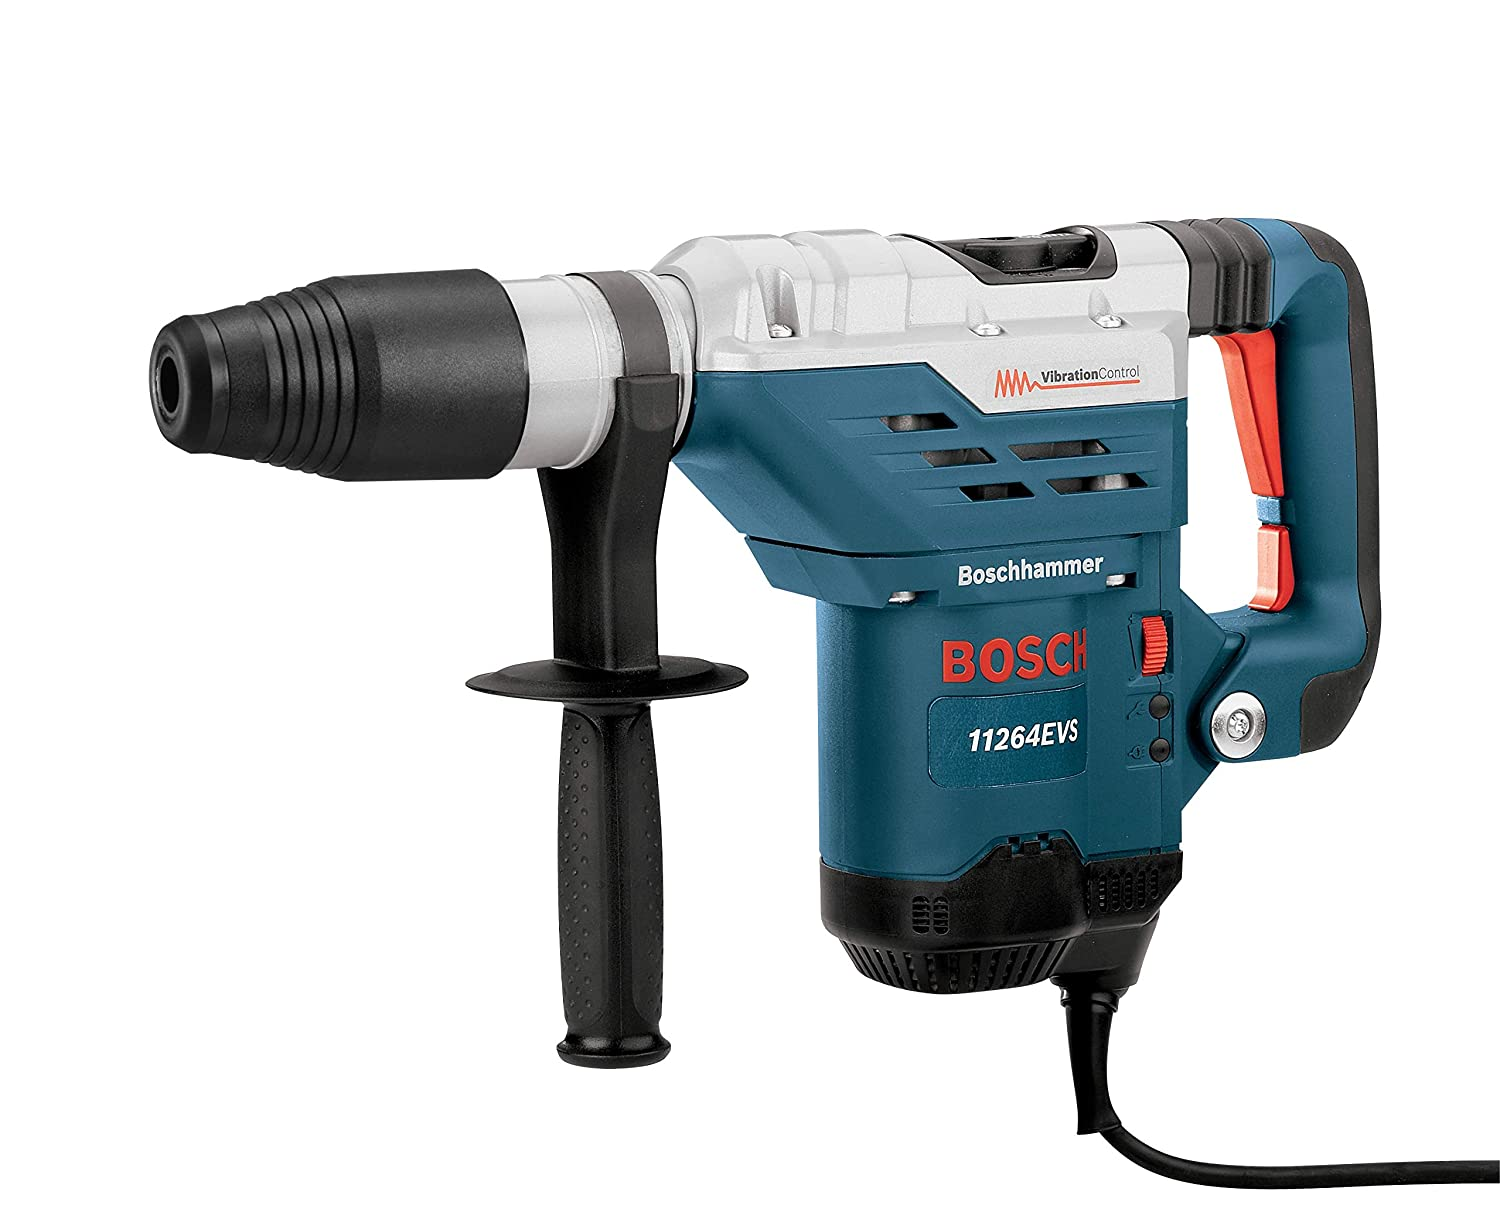 Bosch 11264EVS 1-5 8 SDS-Max Combination Hammer